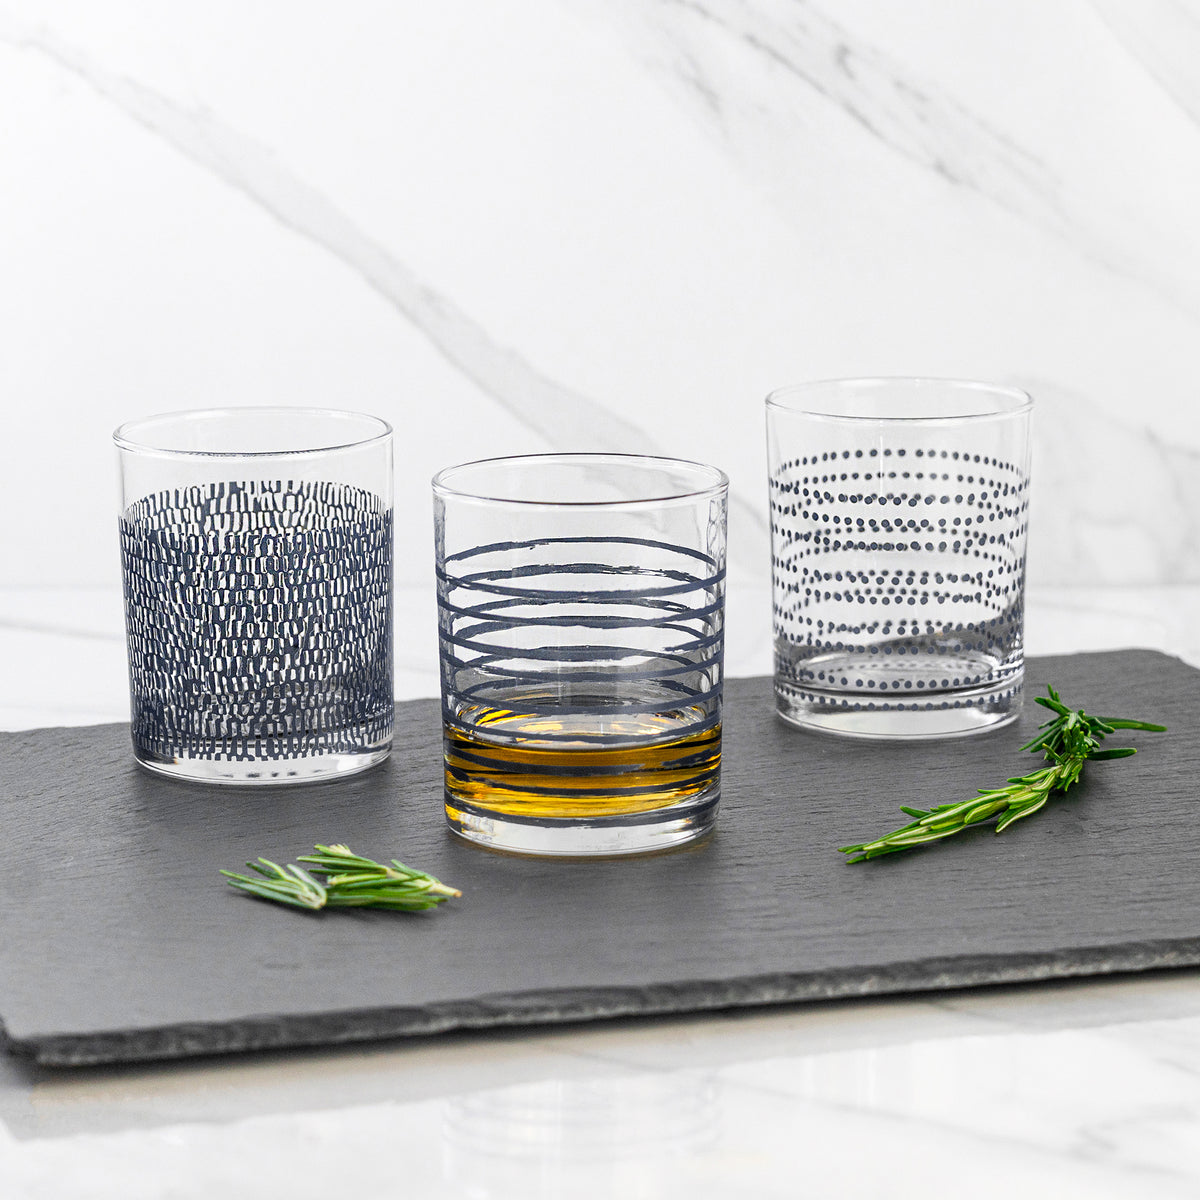 LAV Liberty Patterned Whisky Glasses - 280ml - Navy - Pack of 3